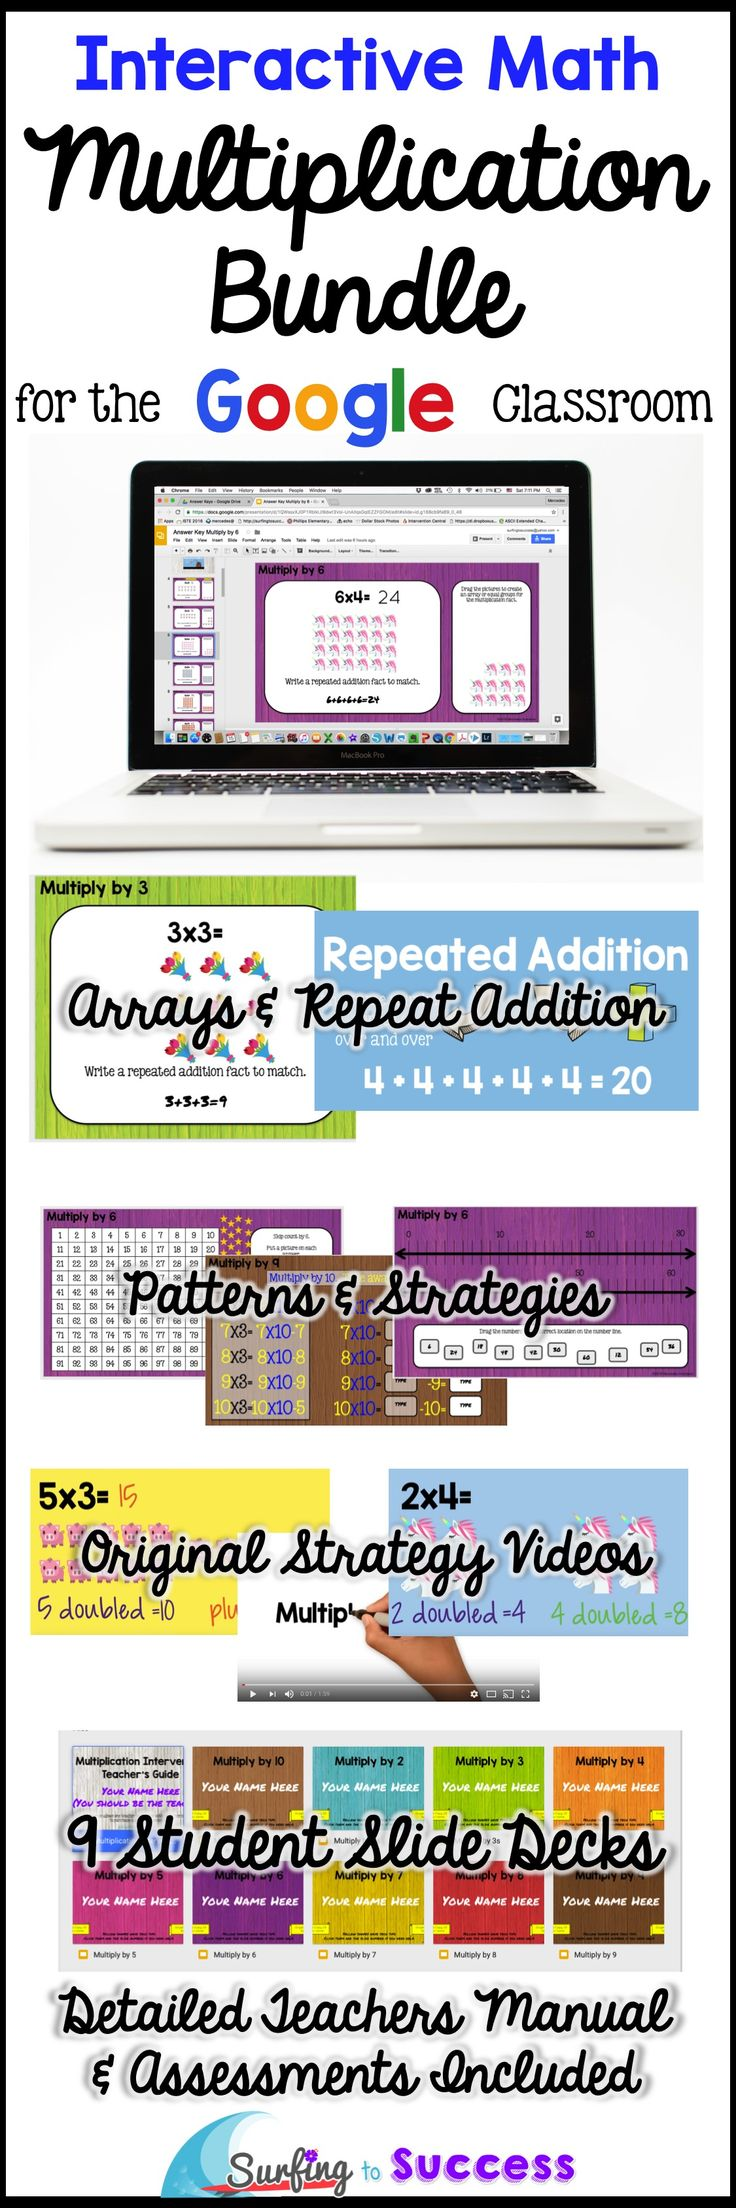 Are your upper grade students struggling with Multiplication Fact Fluency? Improve memorization with this digital Google Slides Resource by focusing on Repeated Addition and other Multiplication Strategies. Fun, self paced, differentiated multiplication practice motivates students to pass each assessment. Original strategy videos demonstrate strategies like Doubles Plus One Group (for x3).  Detailed teachers manual for your Google classroom.